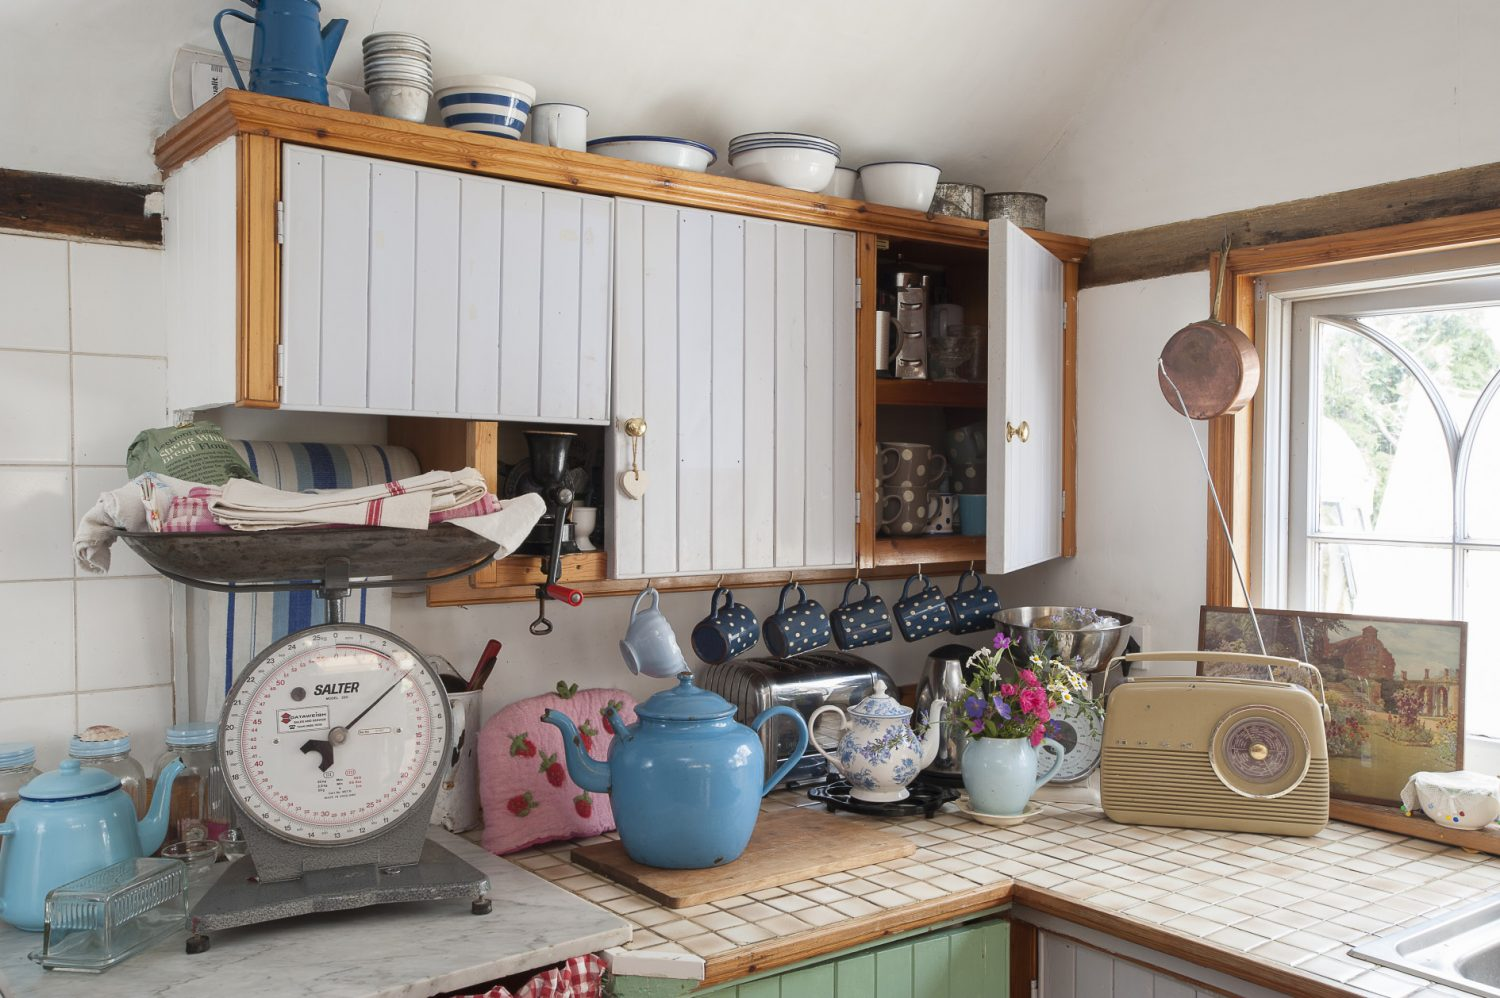 Whilst they wait to start work on their new extension, Pippa and Mike have settled into the existing kitchen, where generously stocked shelves ensure that ingredients and cookbooks are always conveniently to hand